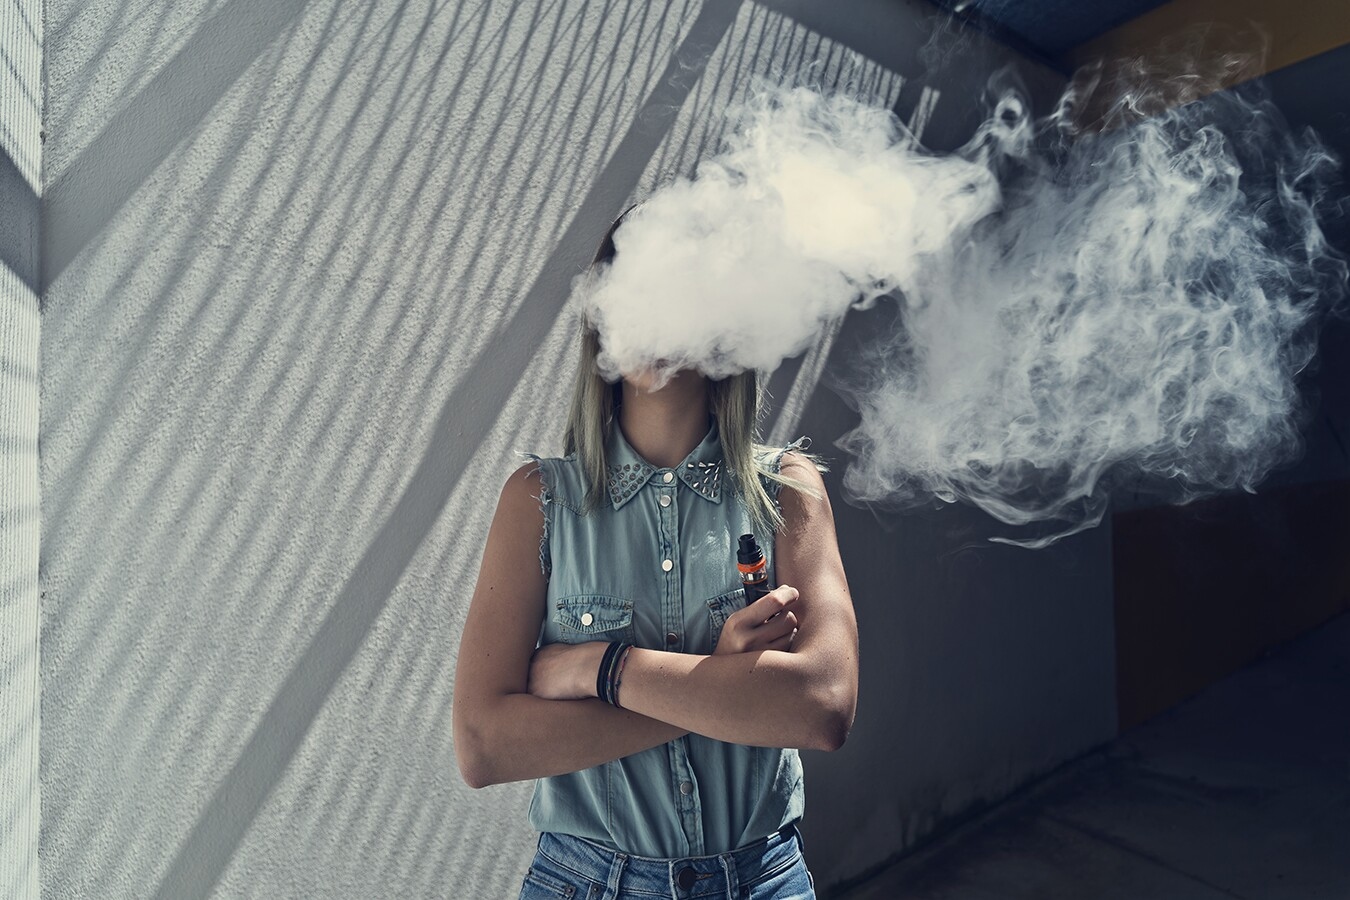 Vaping and lung disease: This doctor saw the link four years ago